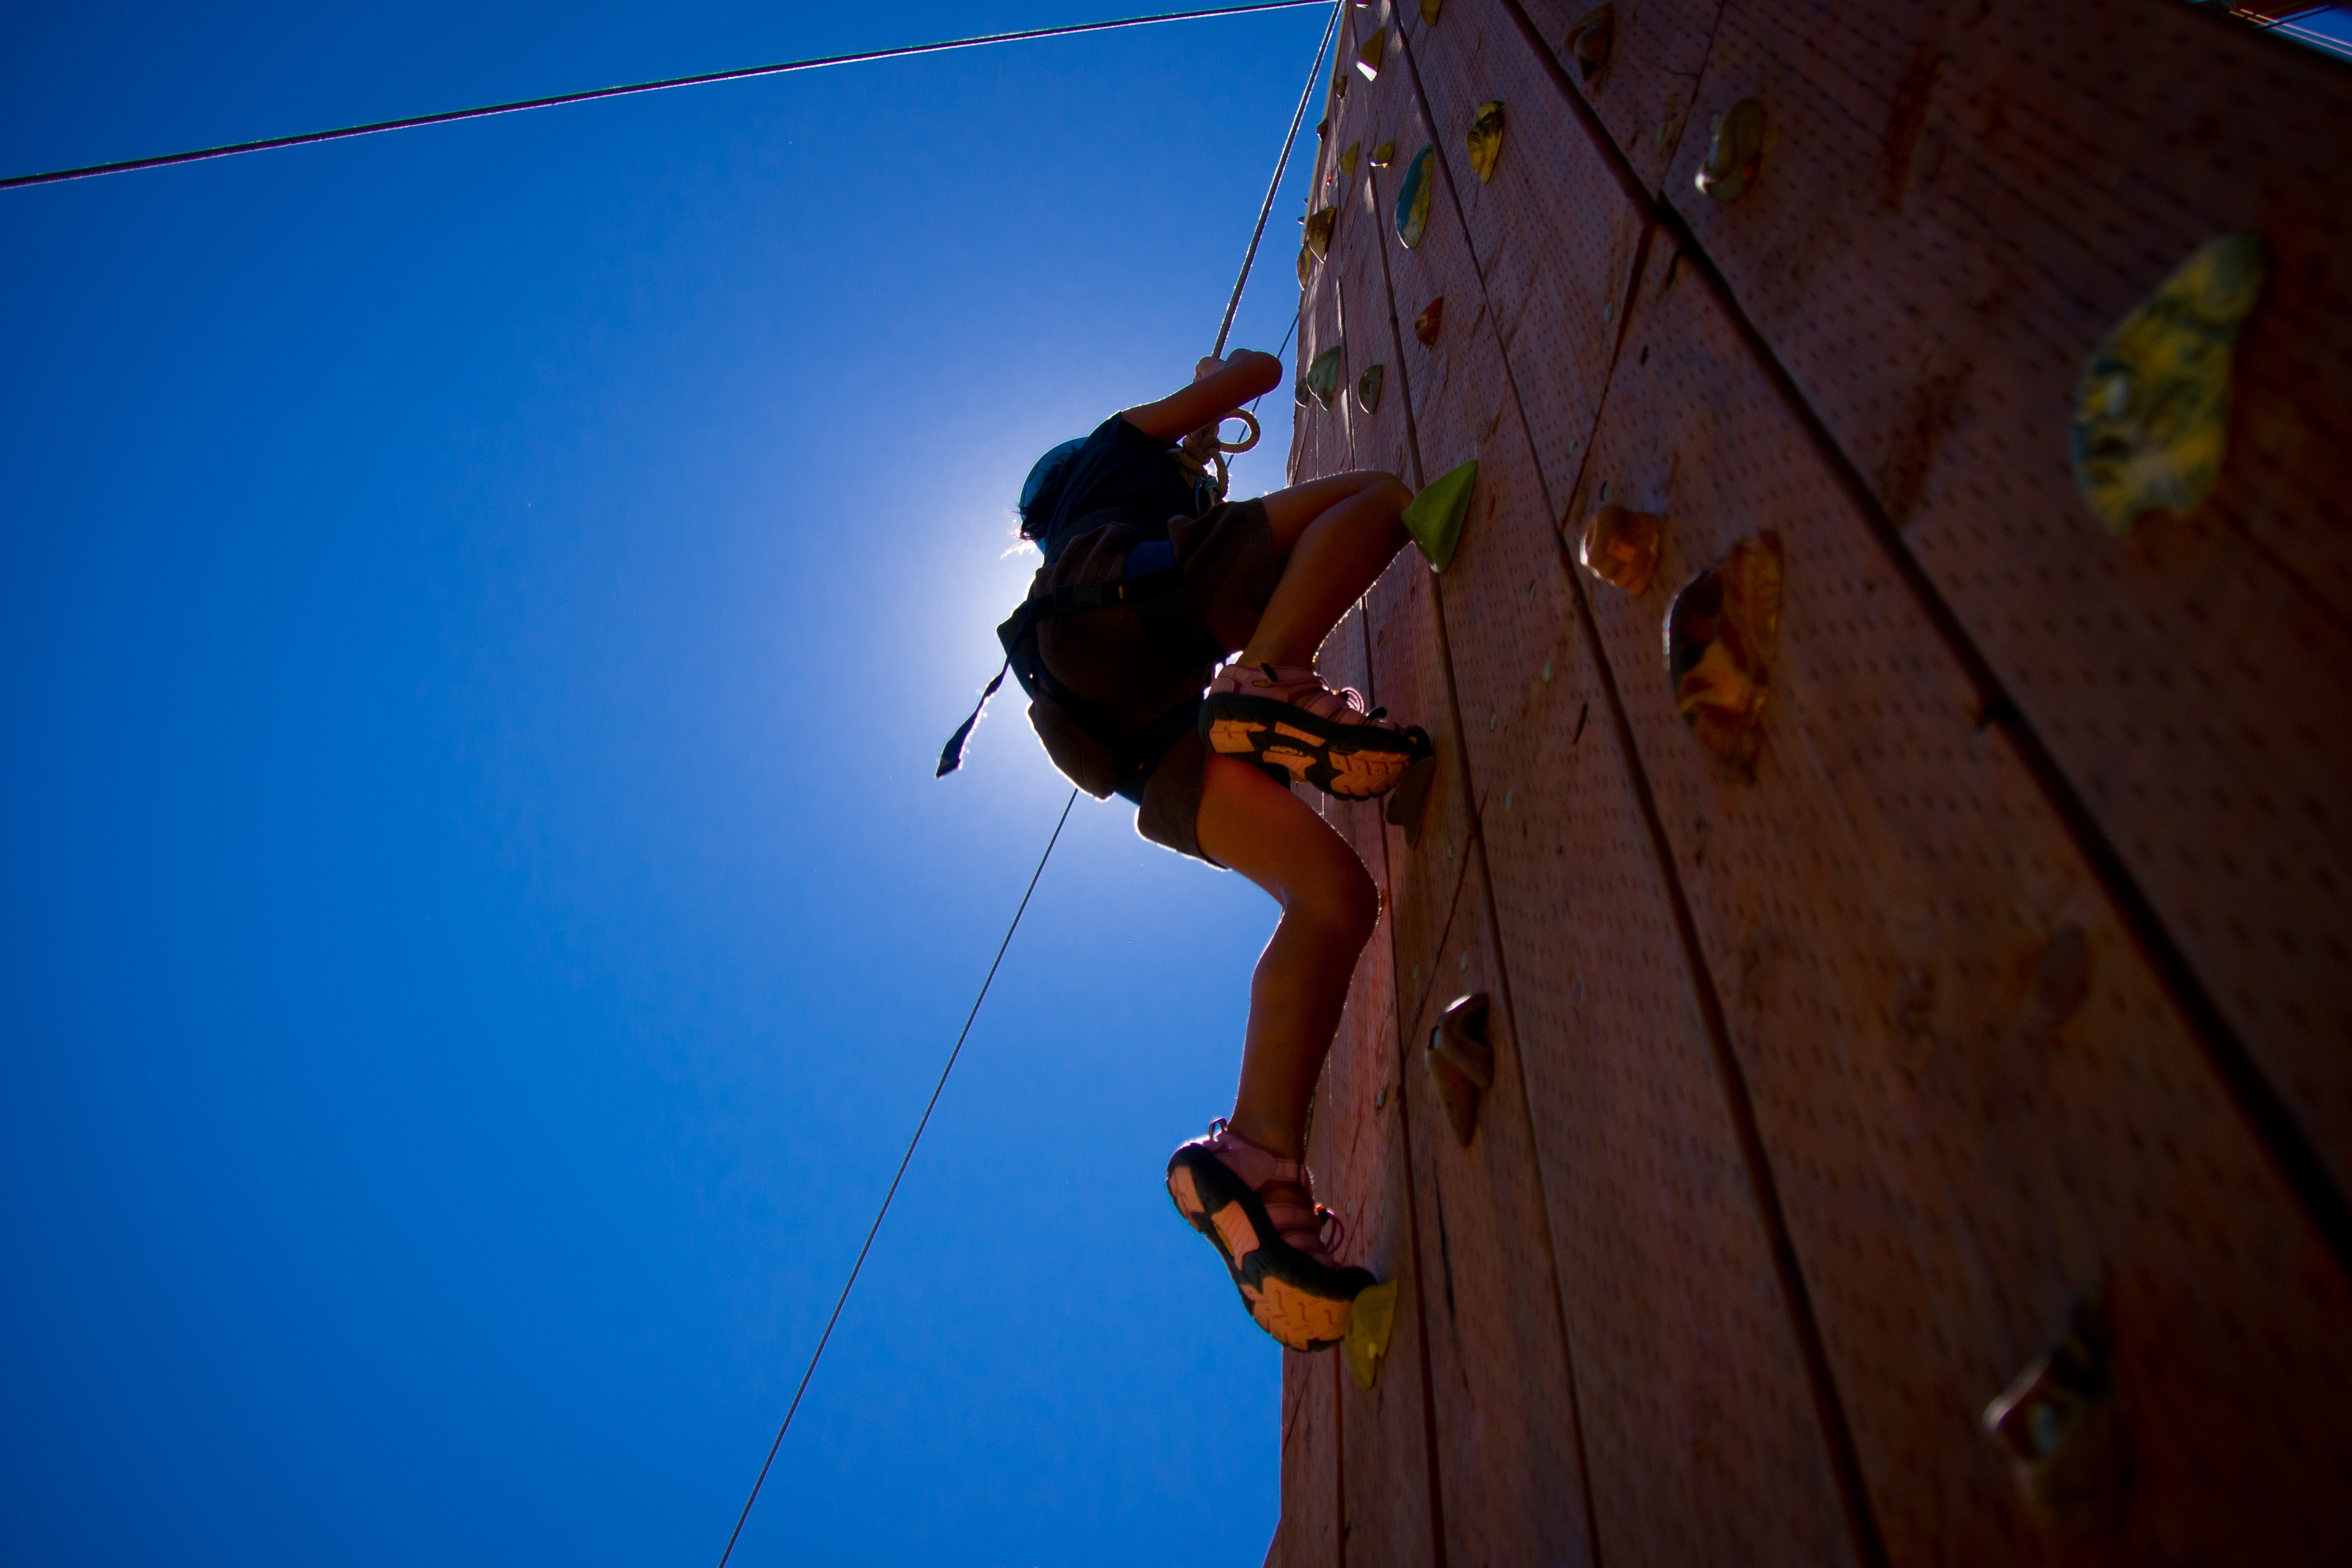 Where Will Your Next Step Take You? - Photo Credit smswigart via Morguefile.com